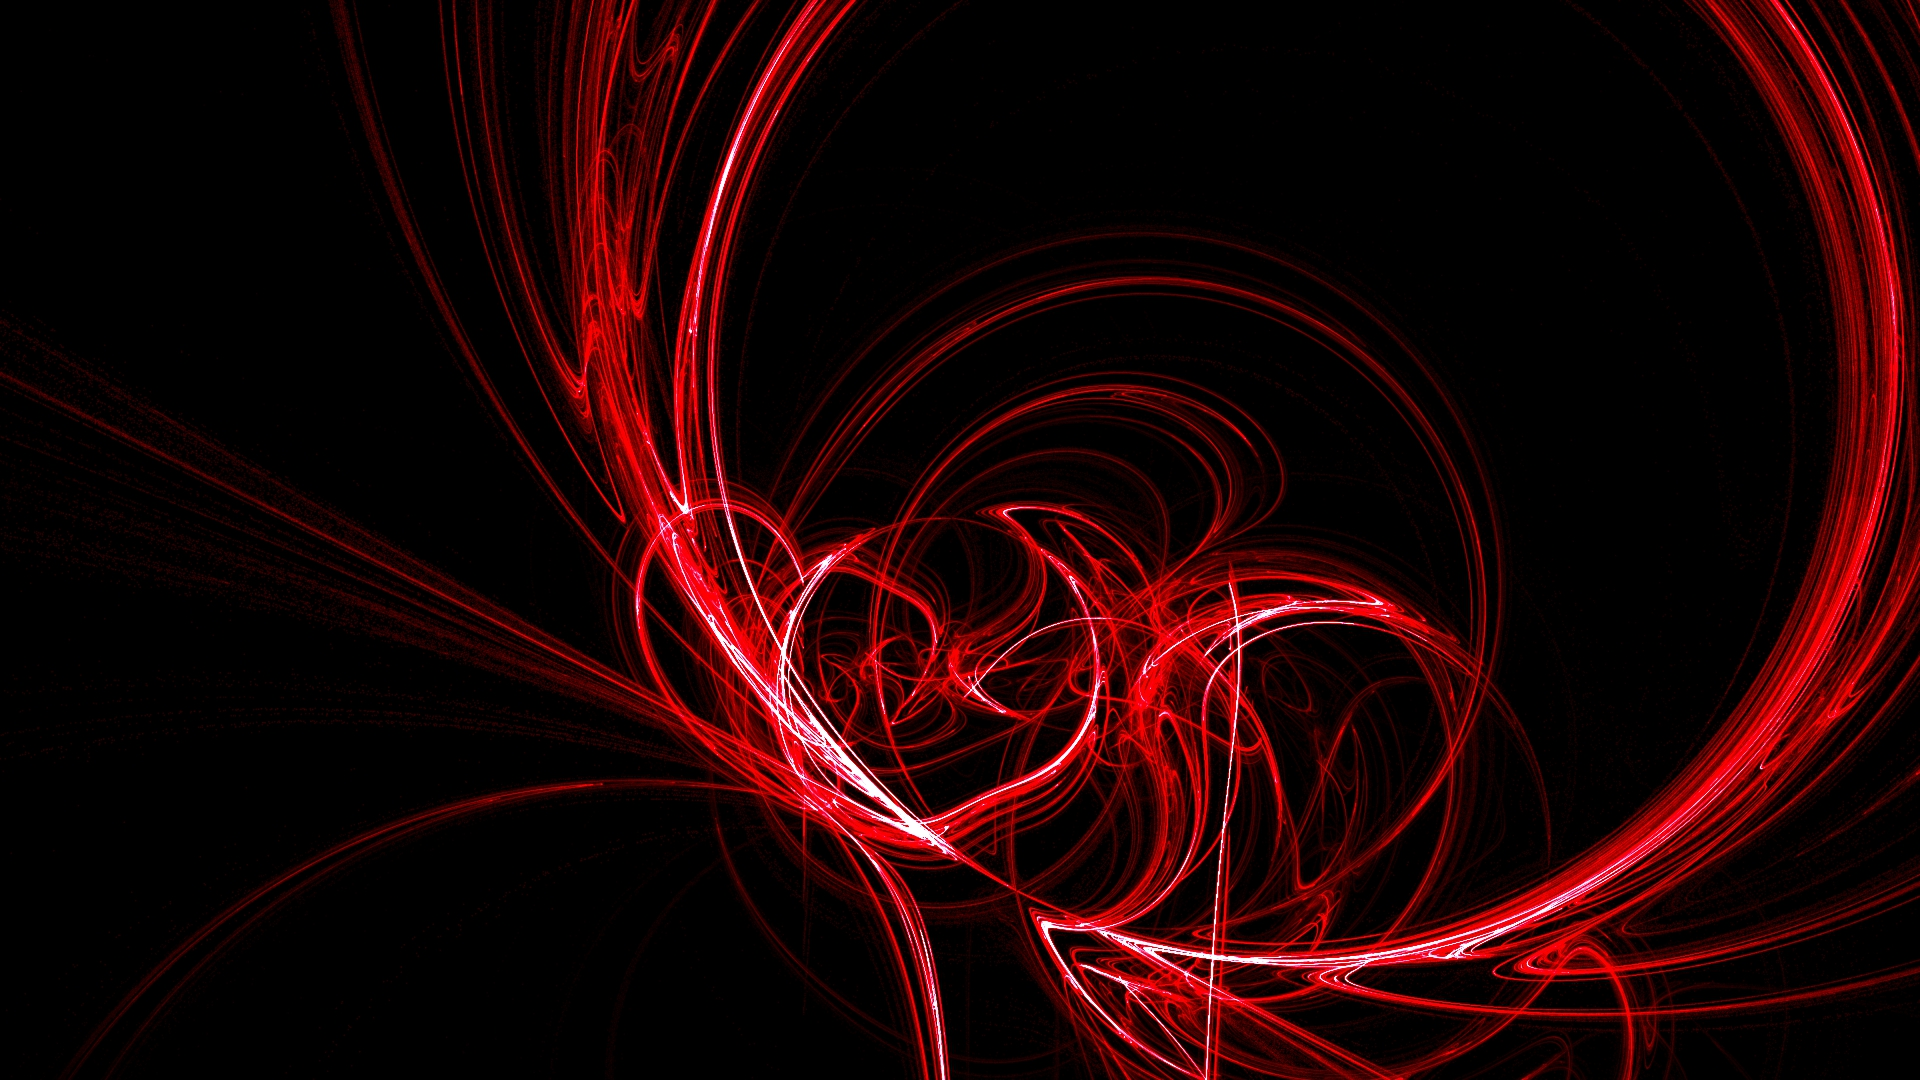 Black and red 1080p wallpaper wallpapersafari - Abstract Wallpaper Red Images 1920x1080